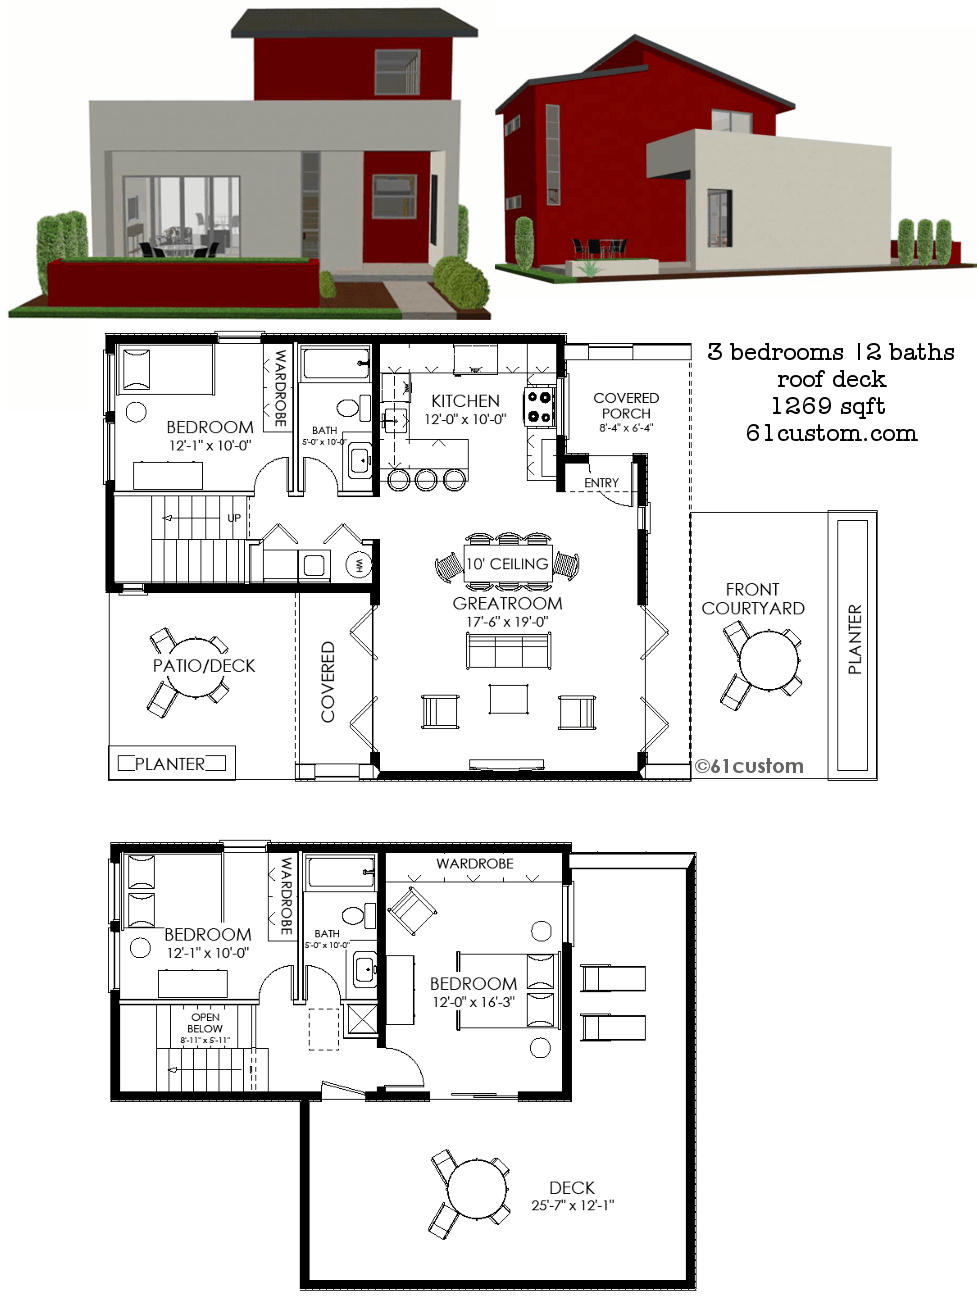 1269 sq.ft. contemporary small house plan with three ... on country kitchen plans, room addition floor plans, large kitchen with pantry floor plans, house plans with great views, european house floor plans, large kitchen islands with open floor plans, house plans with open kitchen, house plans with wrap-around porches,